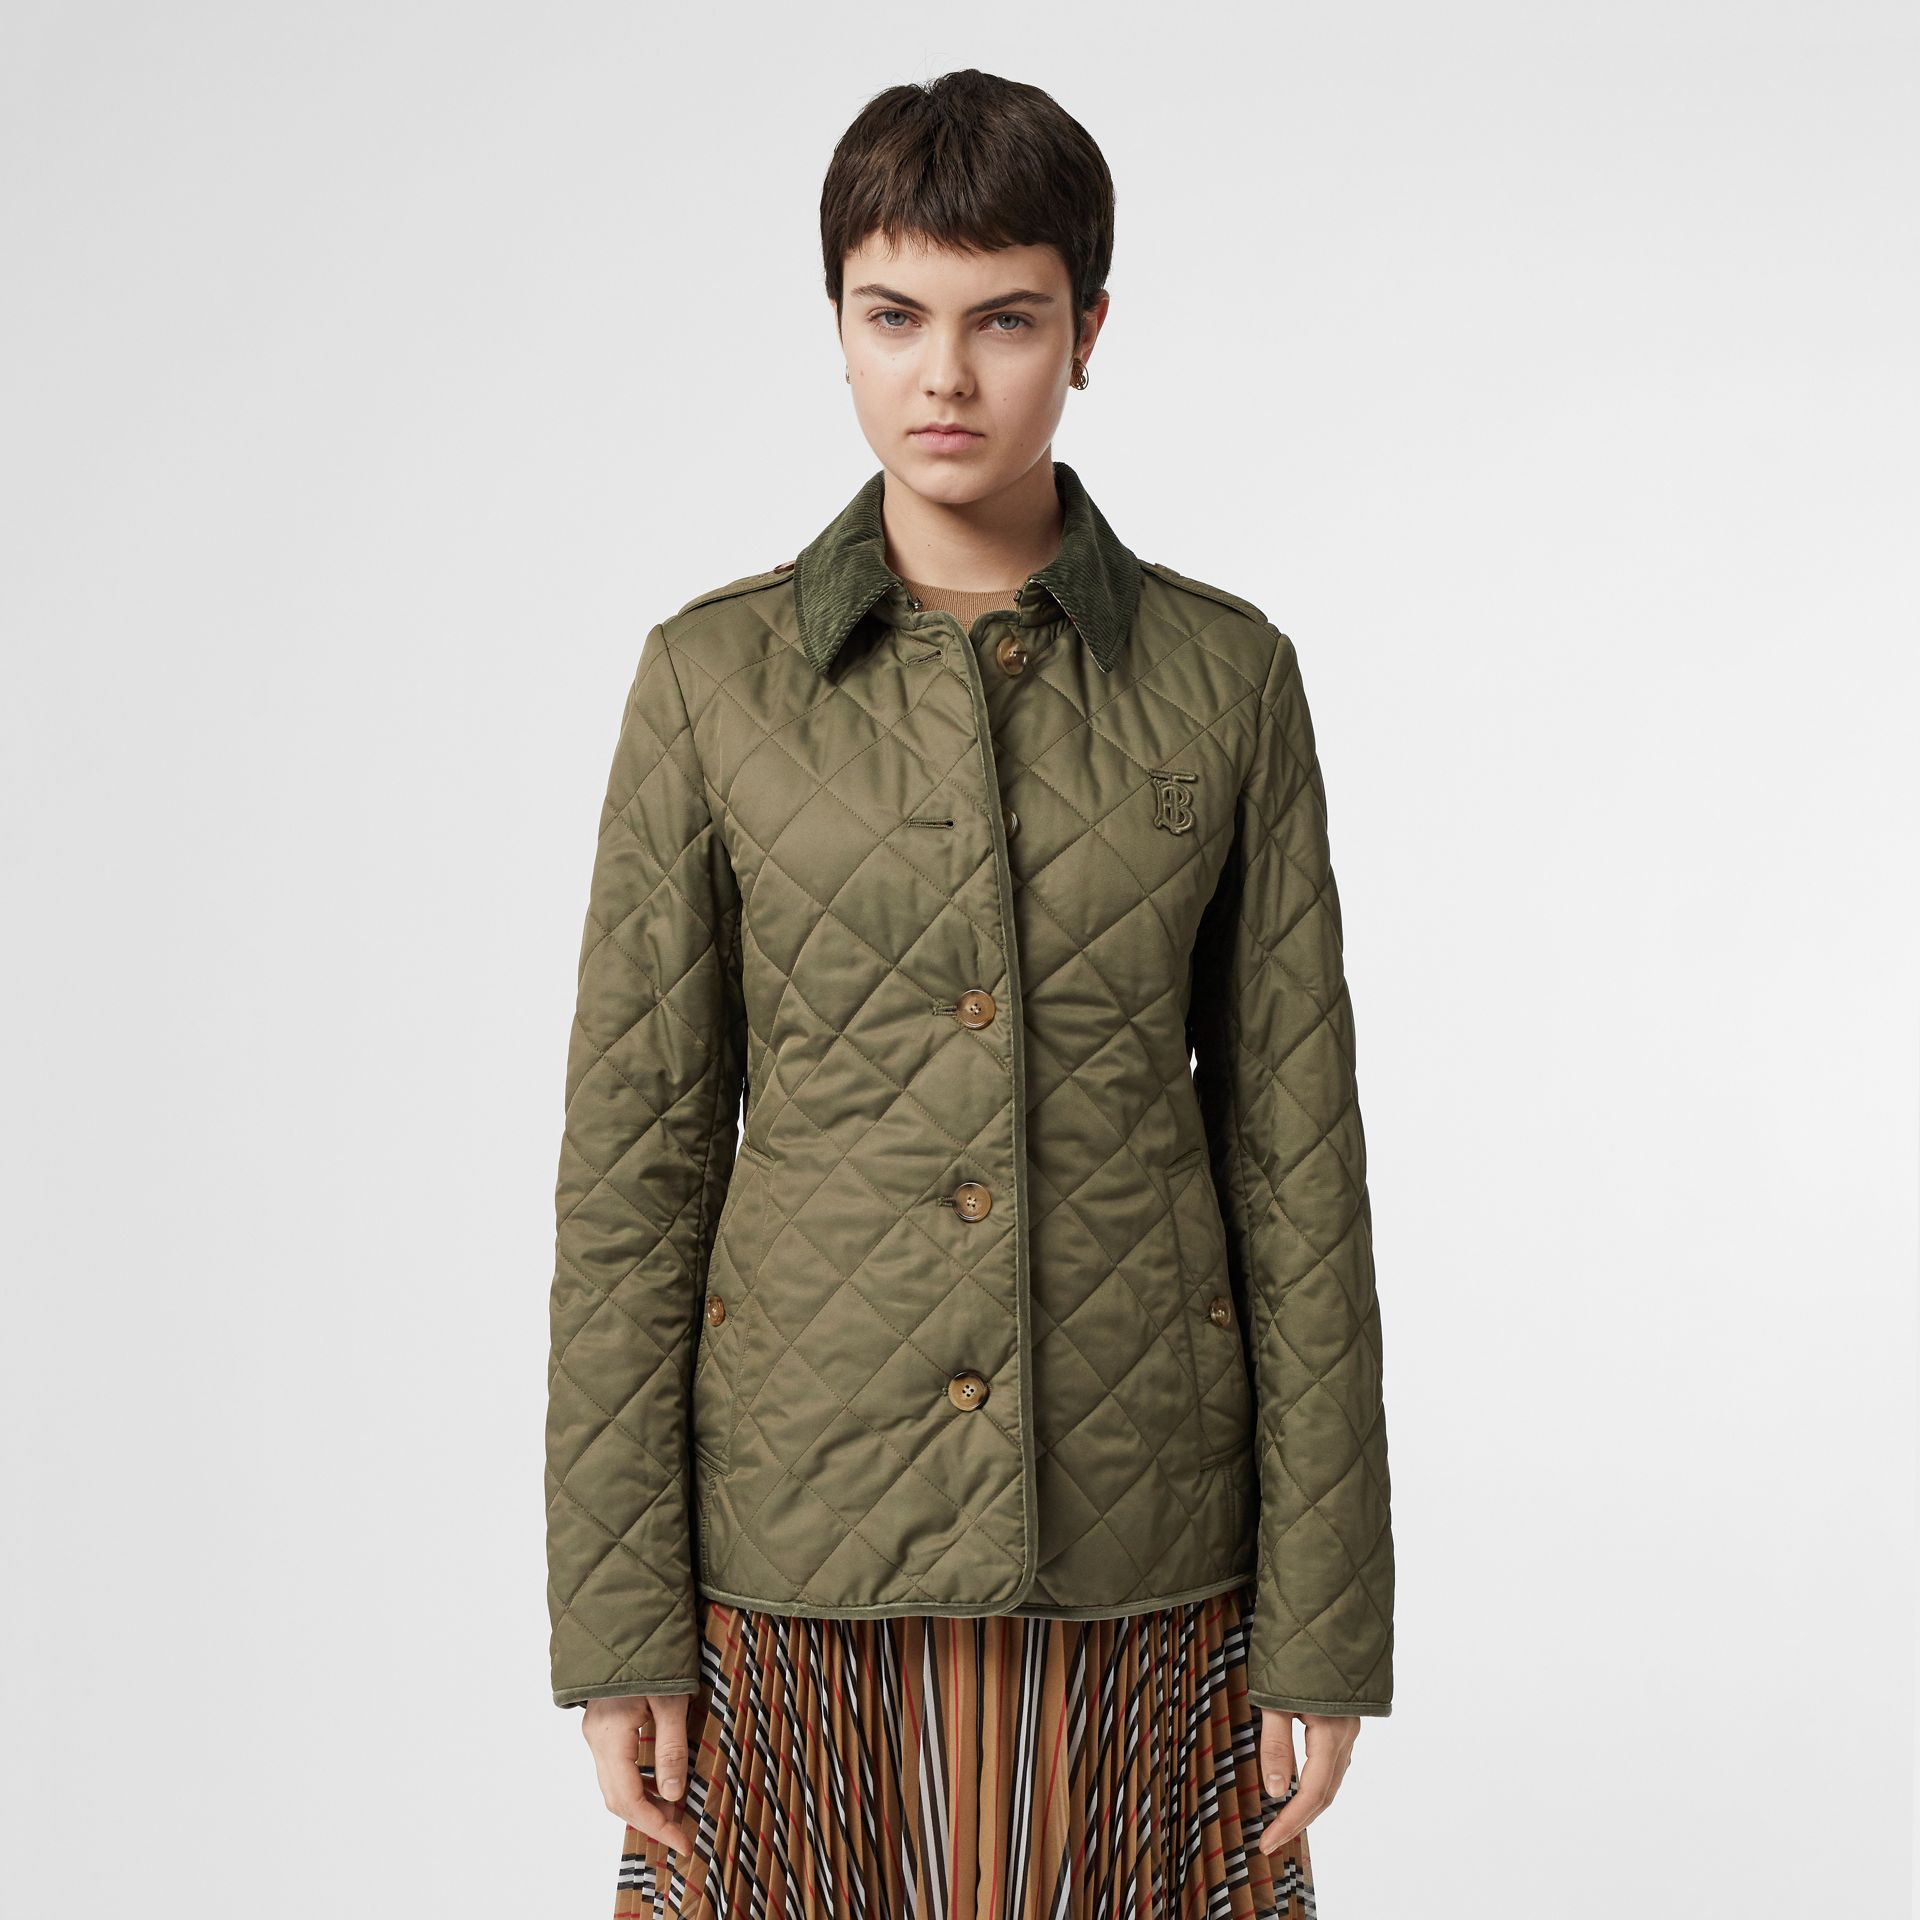 Monogram Motif Diamond Quilted Jacket in Olive Green - Women | Burberry Canada - gallery image 3